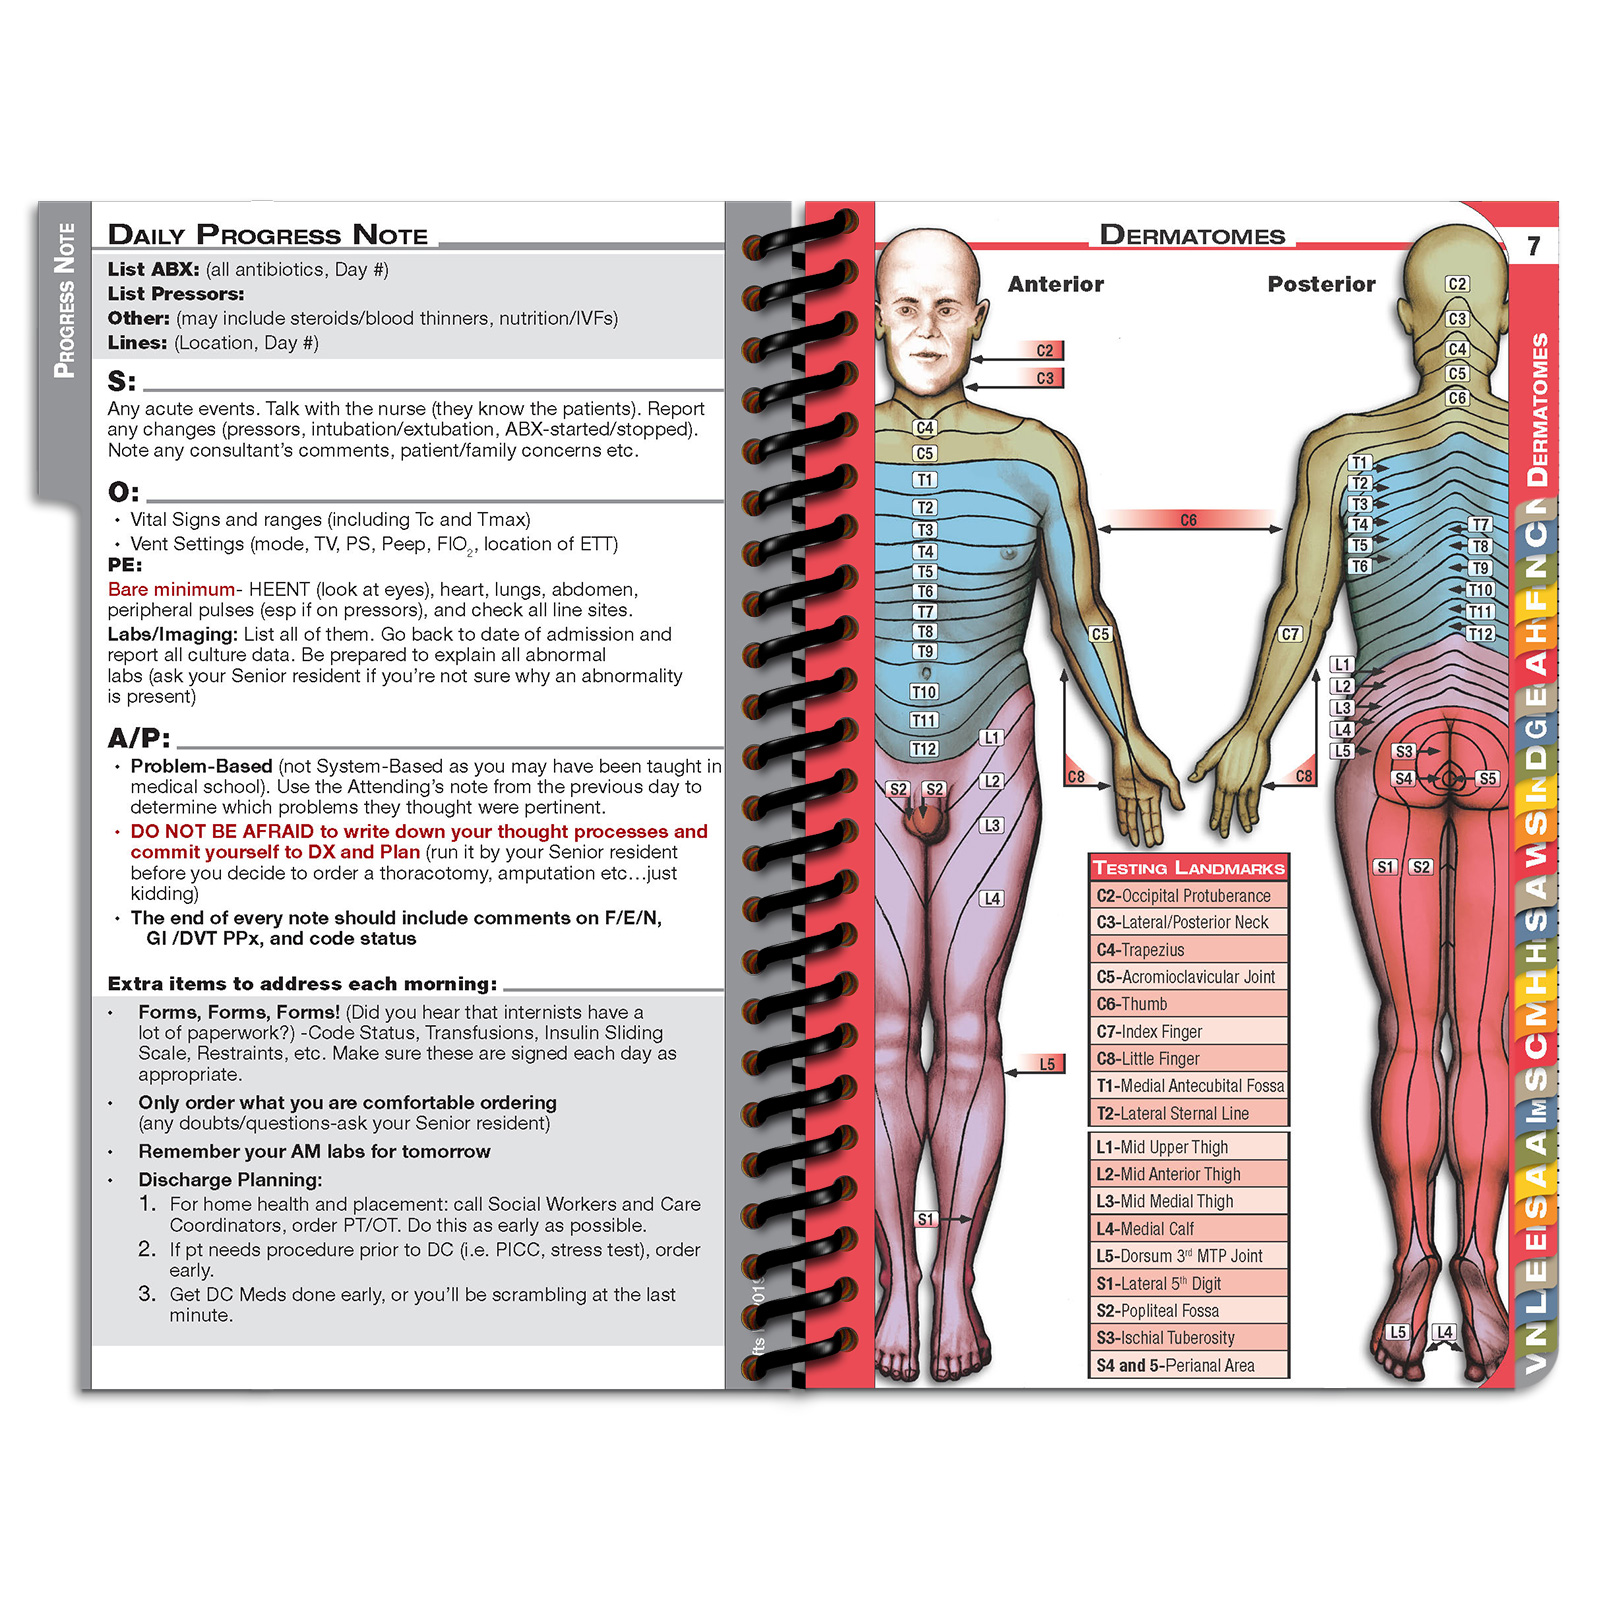 MDpocket Tufts Physician Assistant Edition